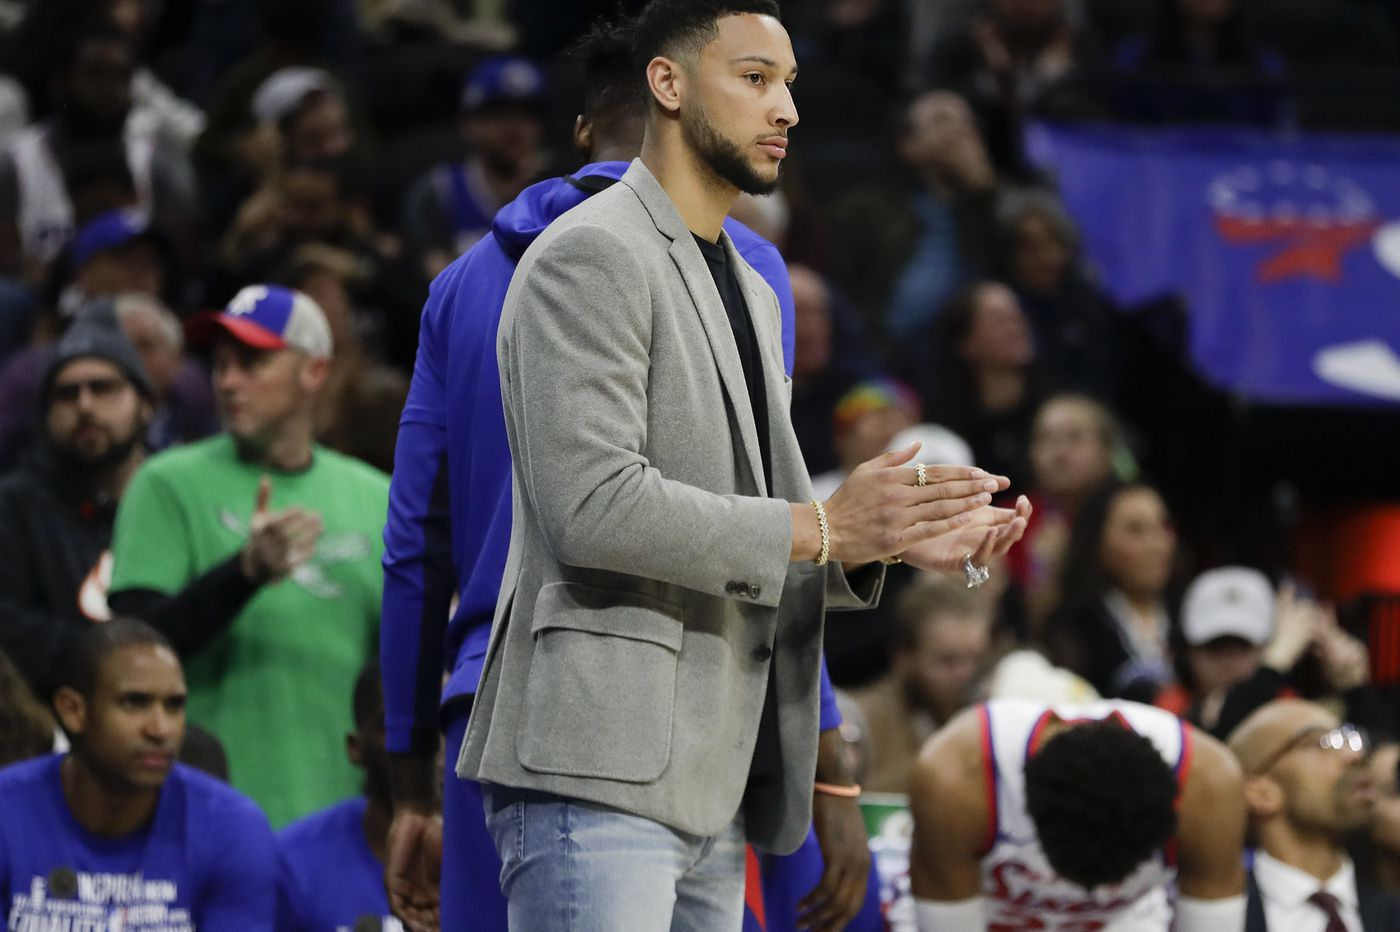 Ben Simmons probable for Sixers vs. Bucks game in Milwaukee